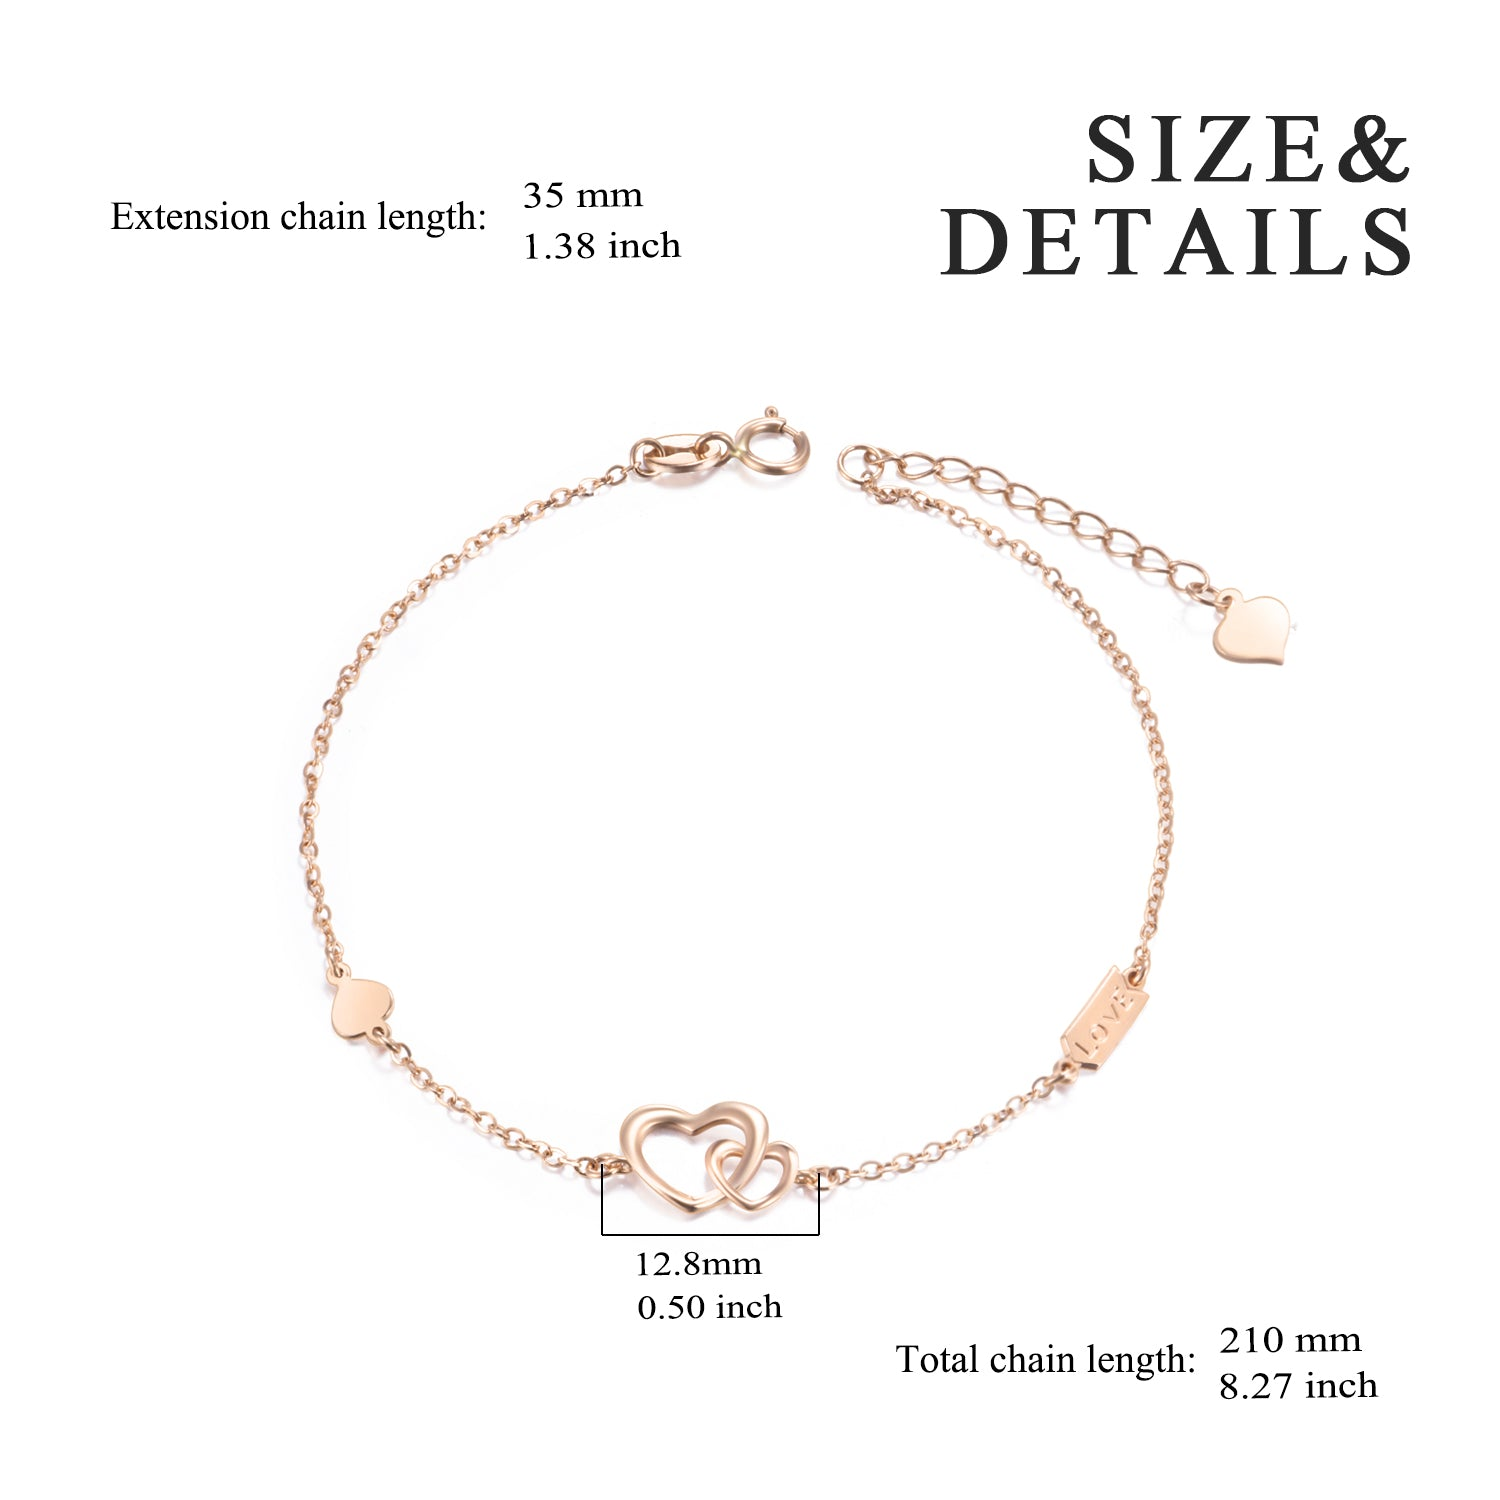 18K Gold European And American Fashion Trend Cross-Border Jewelry Linked Love Bracelet